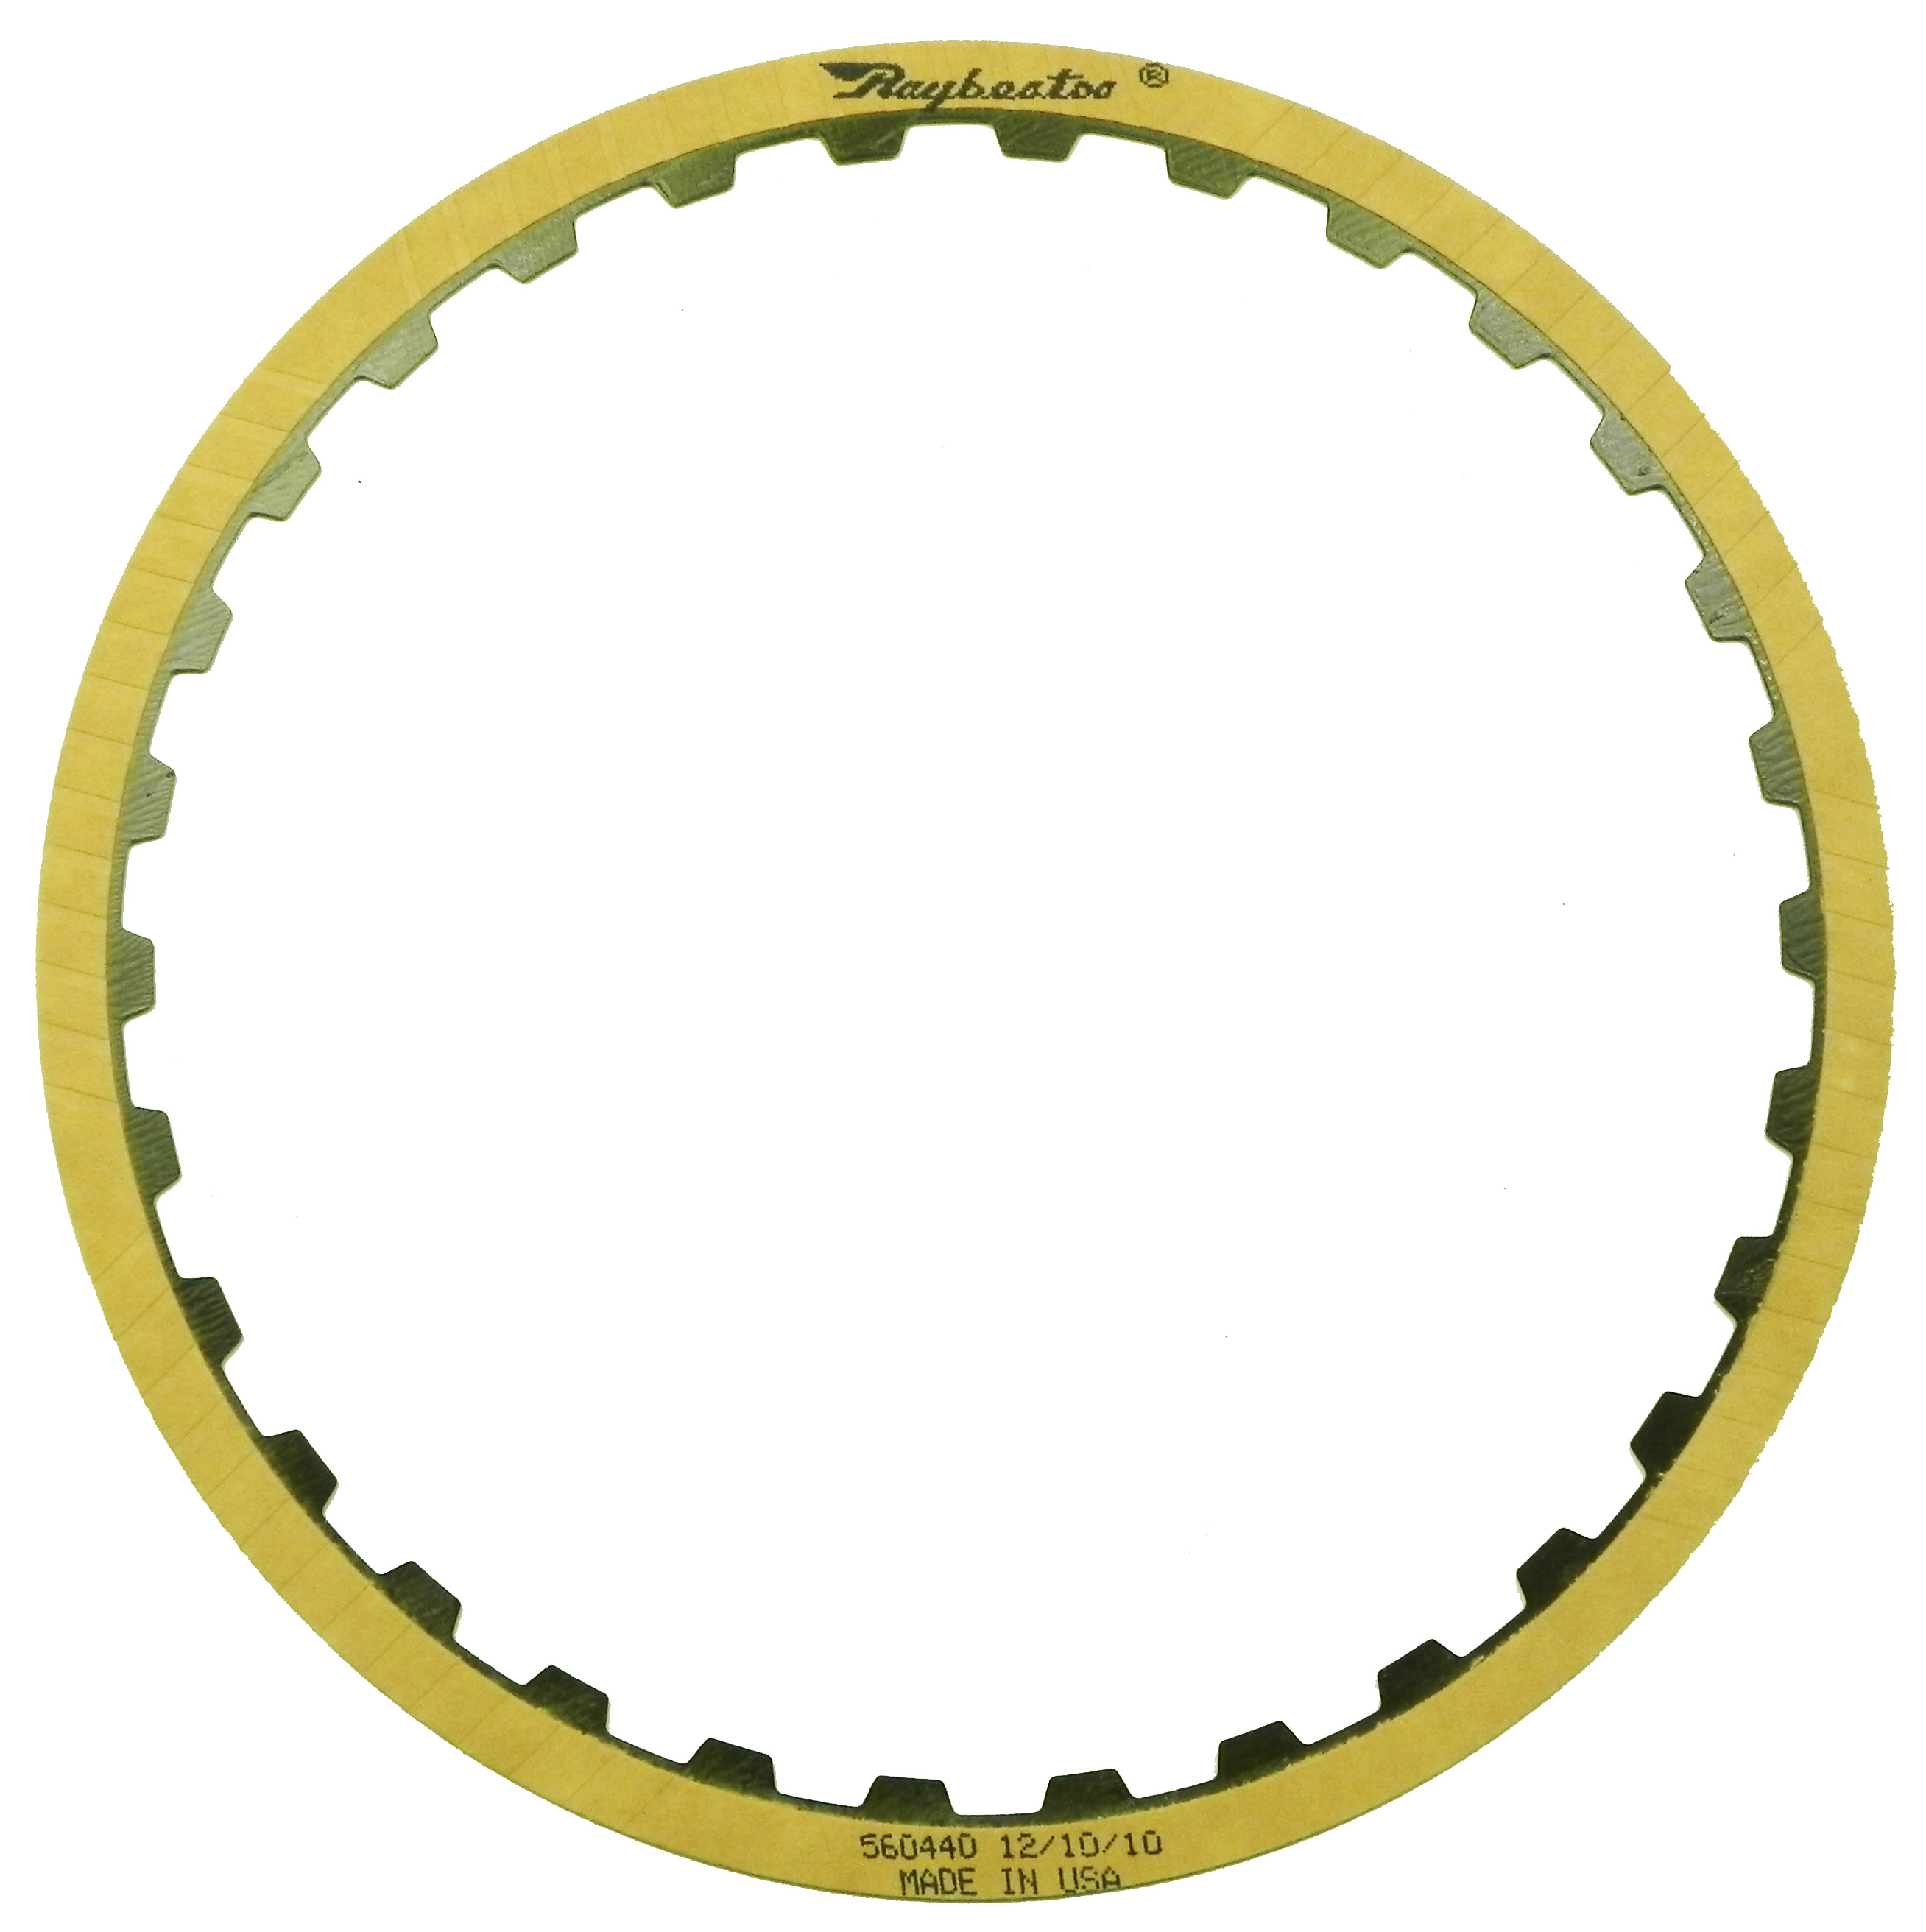 6HP19, 6HP19A, 6HP19X, 6HP21, 6HP21X, 09L OE Replacement Friction Clutch Plate